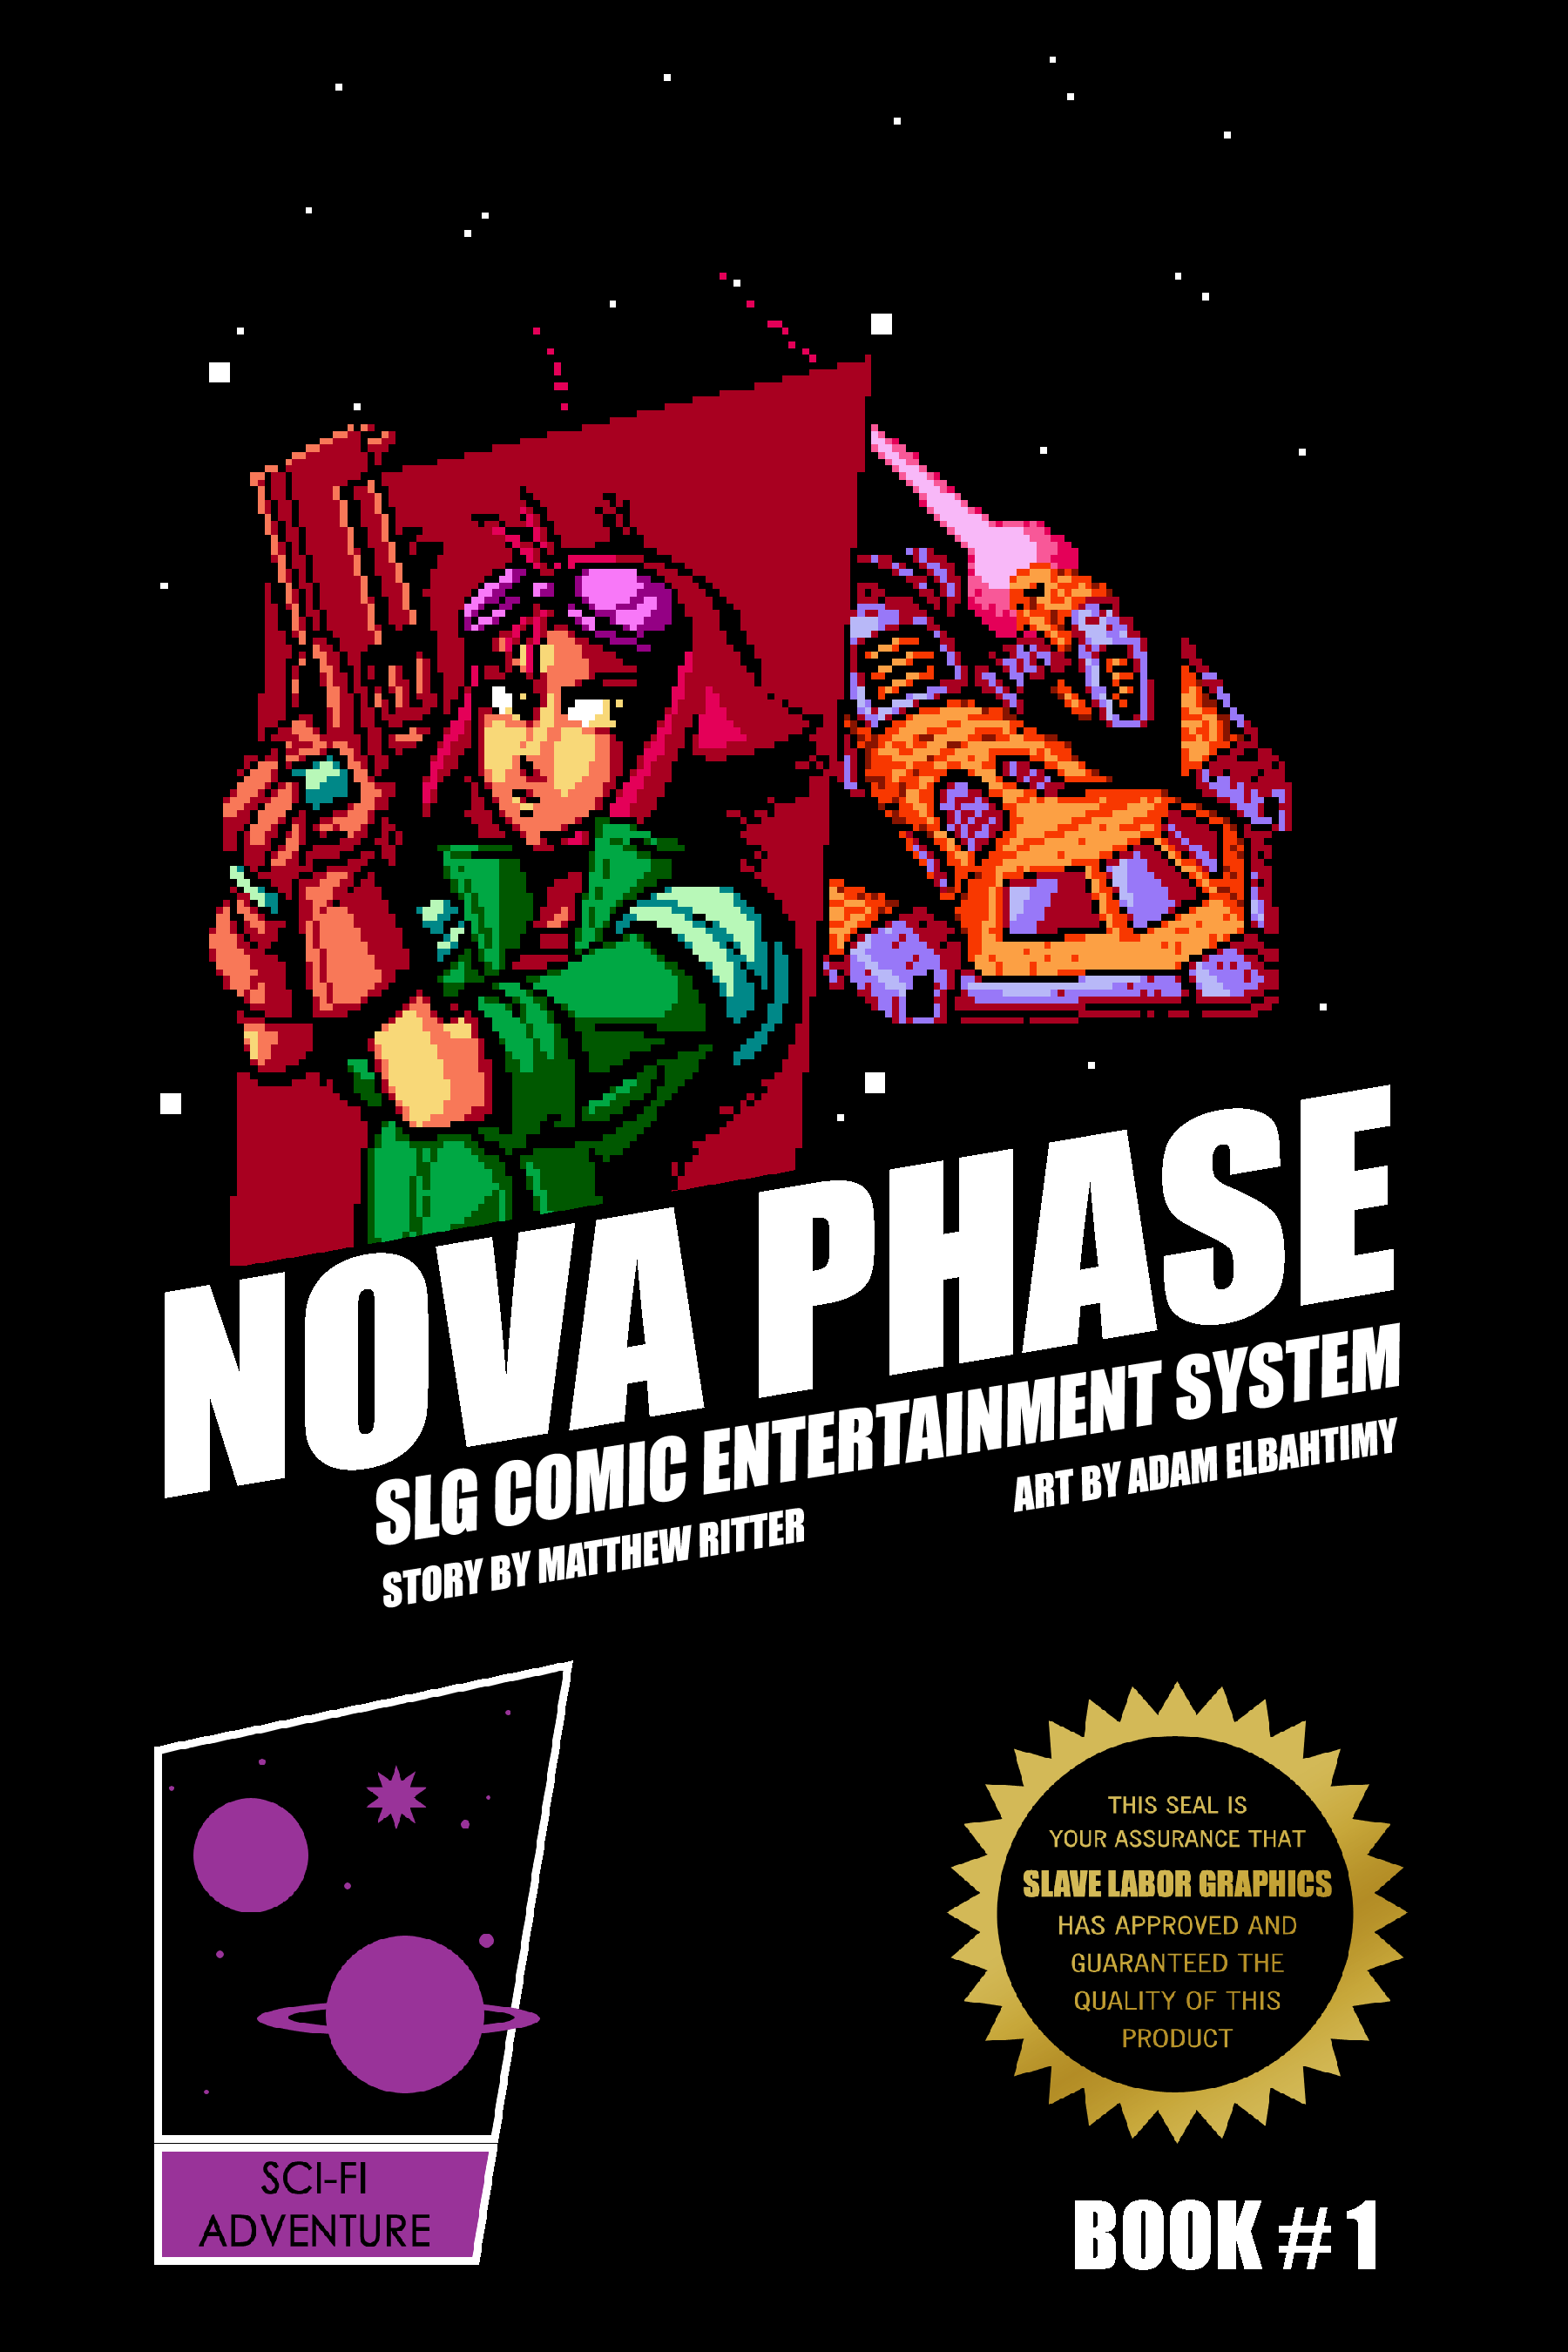 Nova Phase, a new digital comic inspired by 16-bit videogames